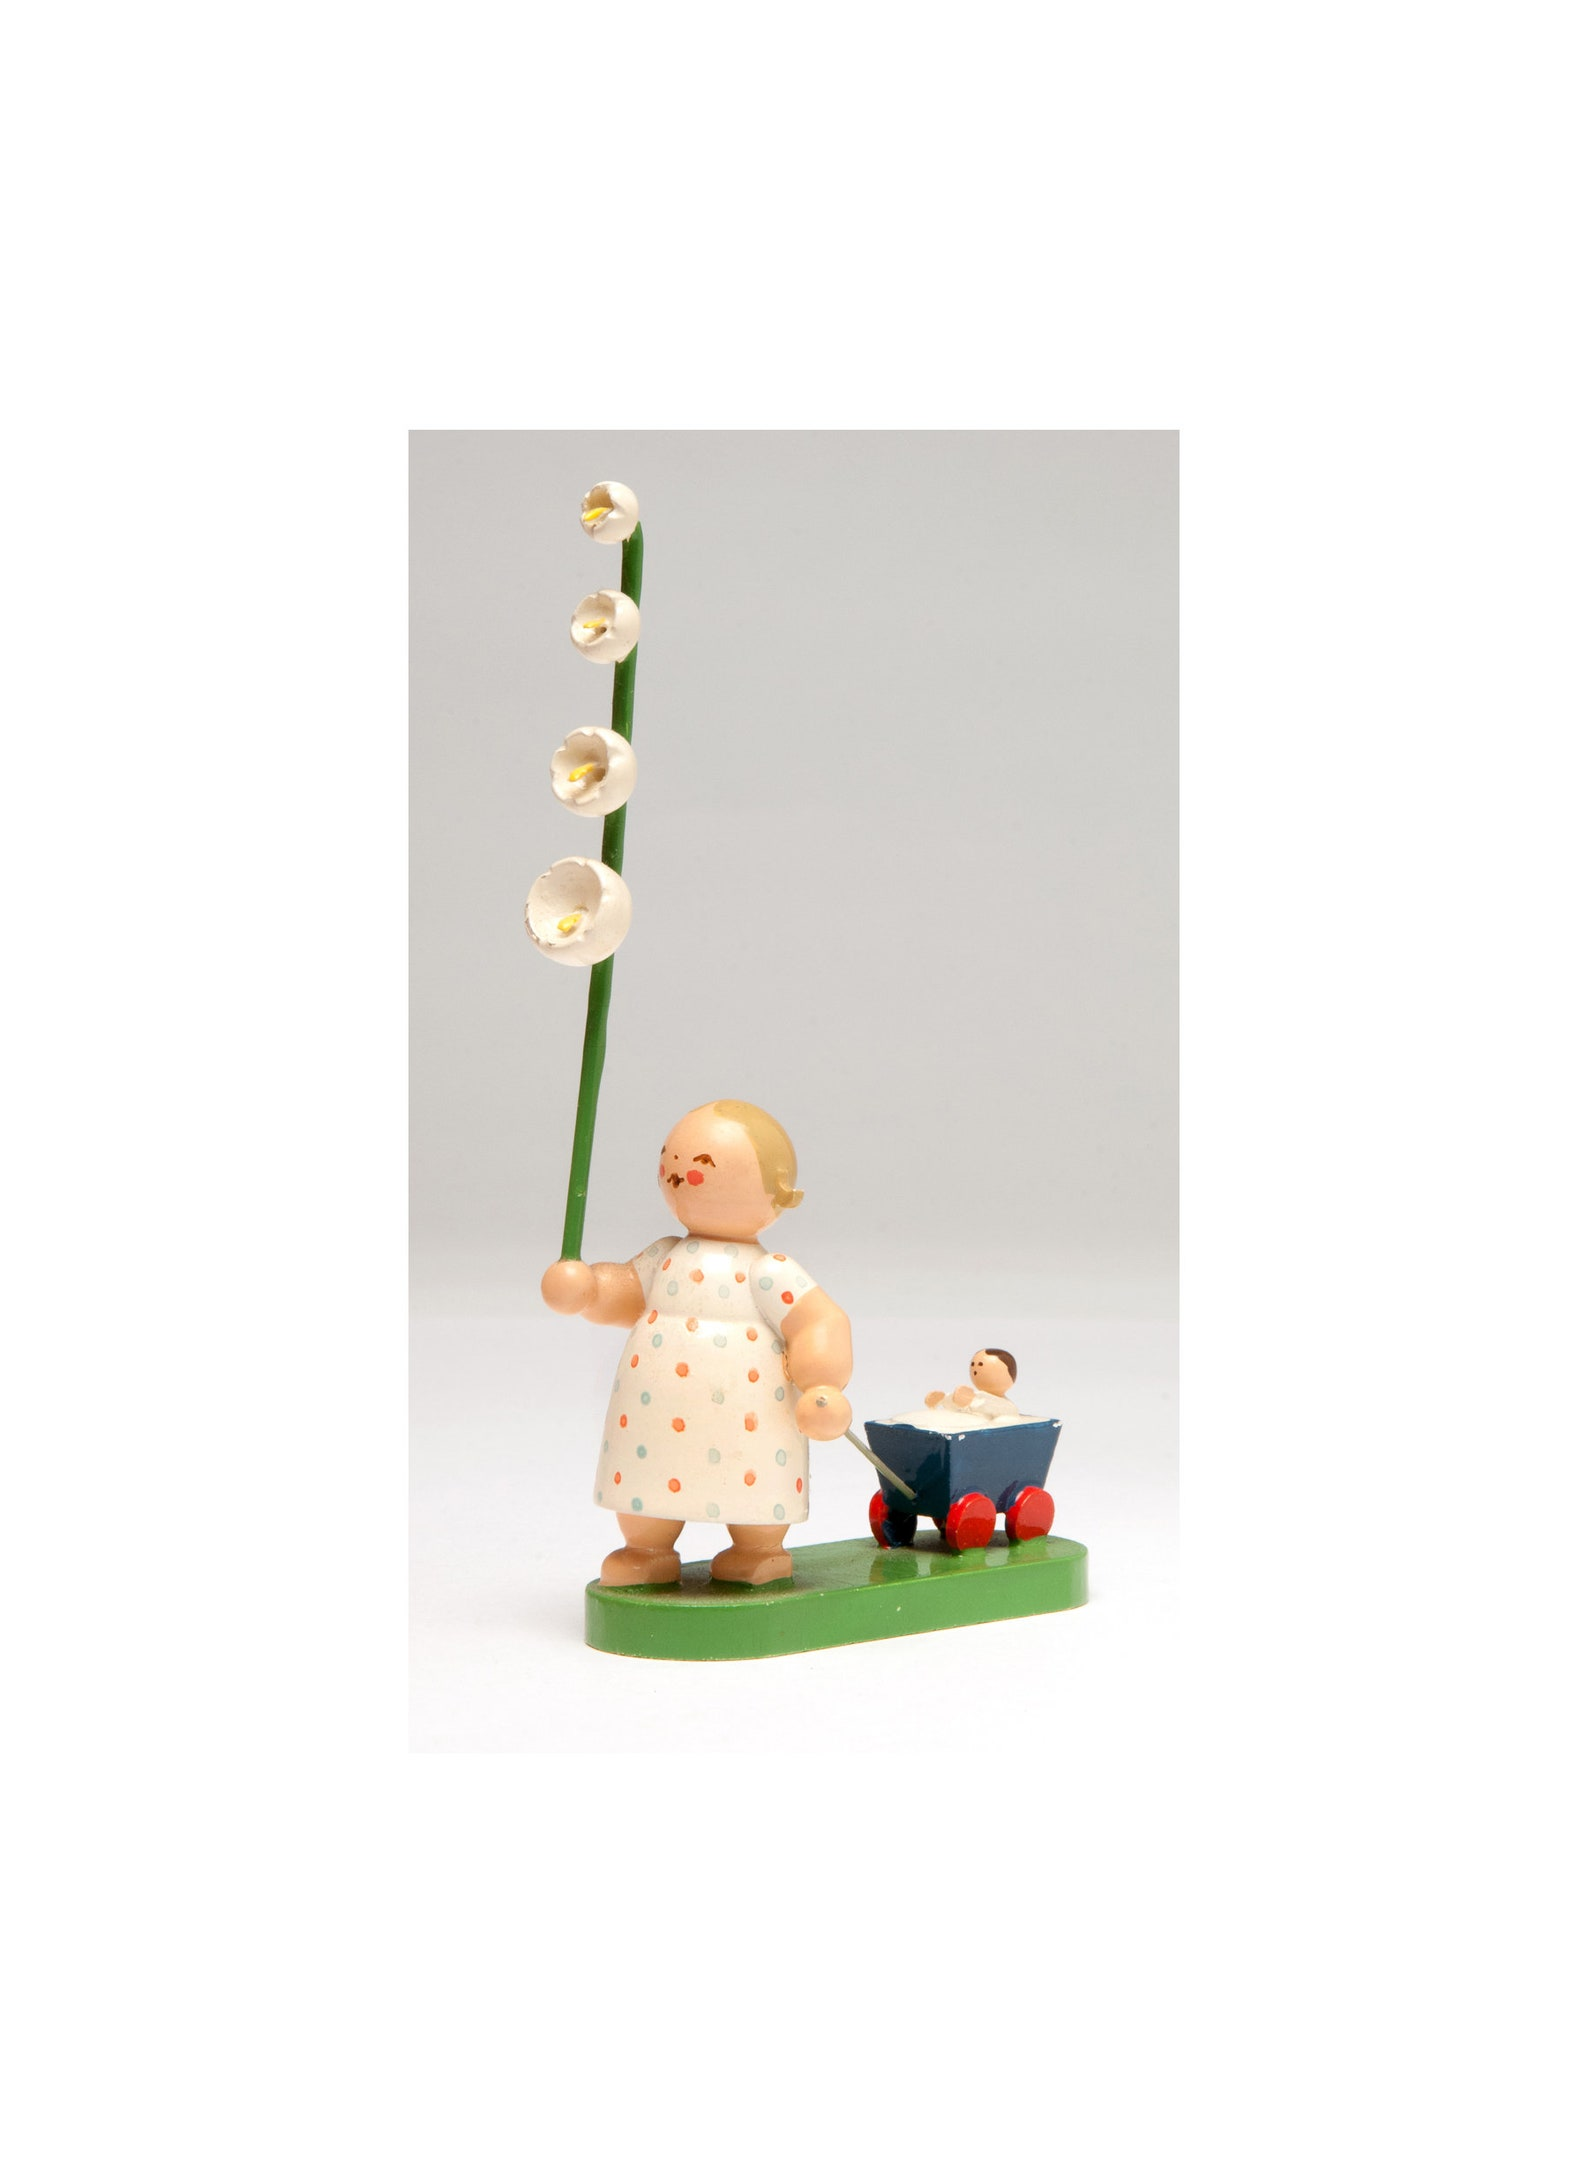 Wendt & Kühn girl (Blossom Kinder) with flower pulling baby in wagon by Wendt and Kühn Erzgebirge folk art hand painted made in Germany